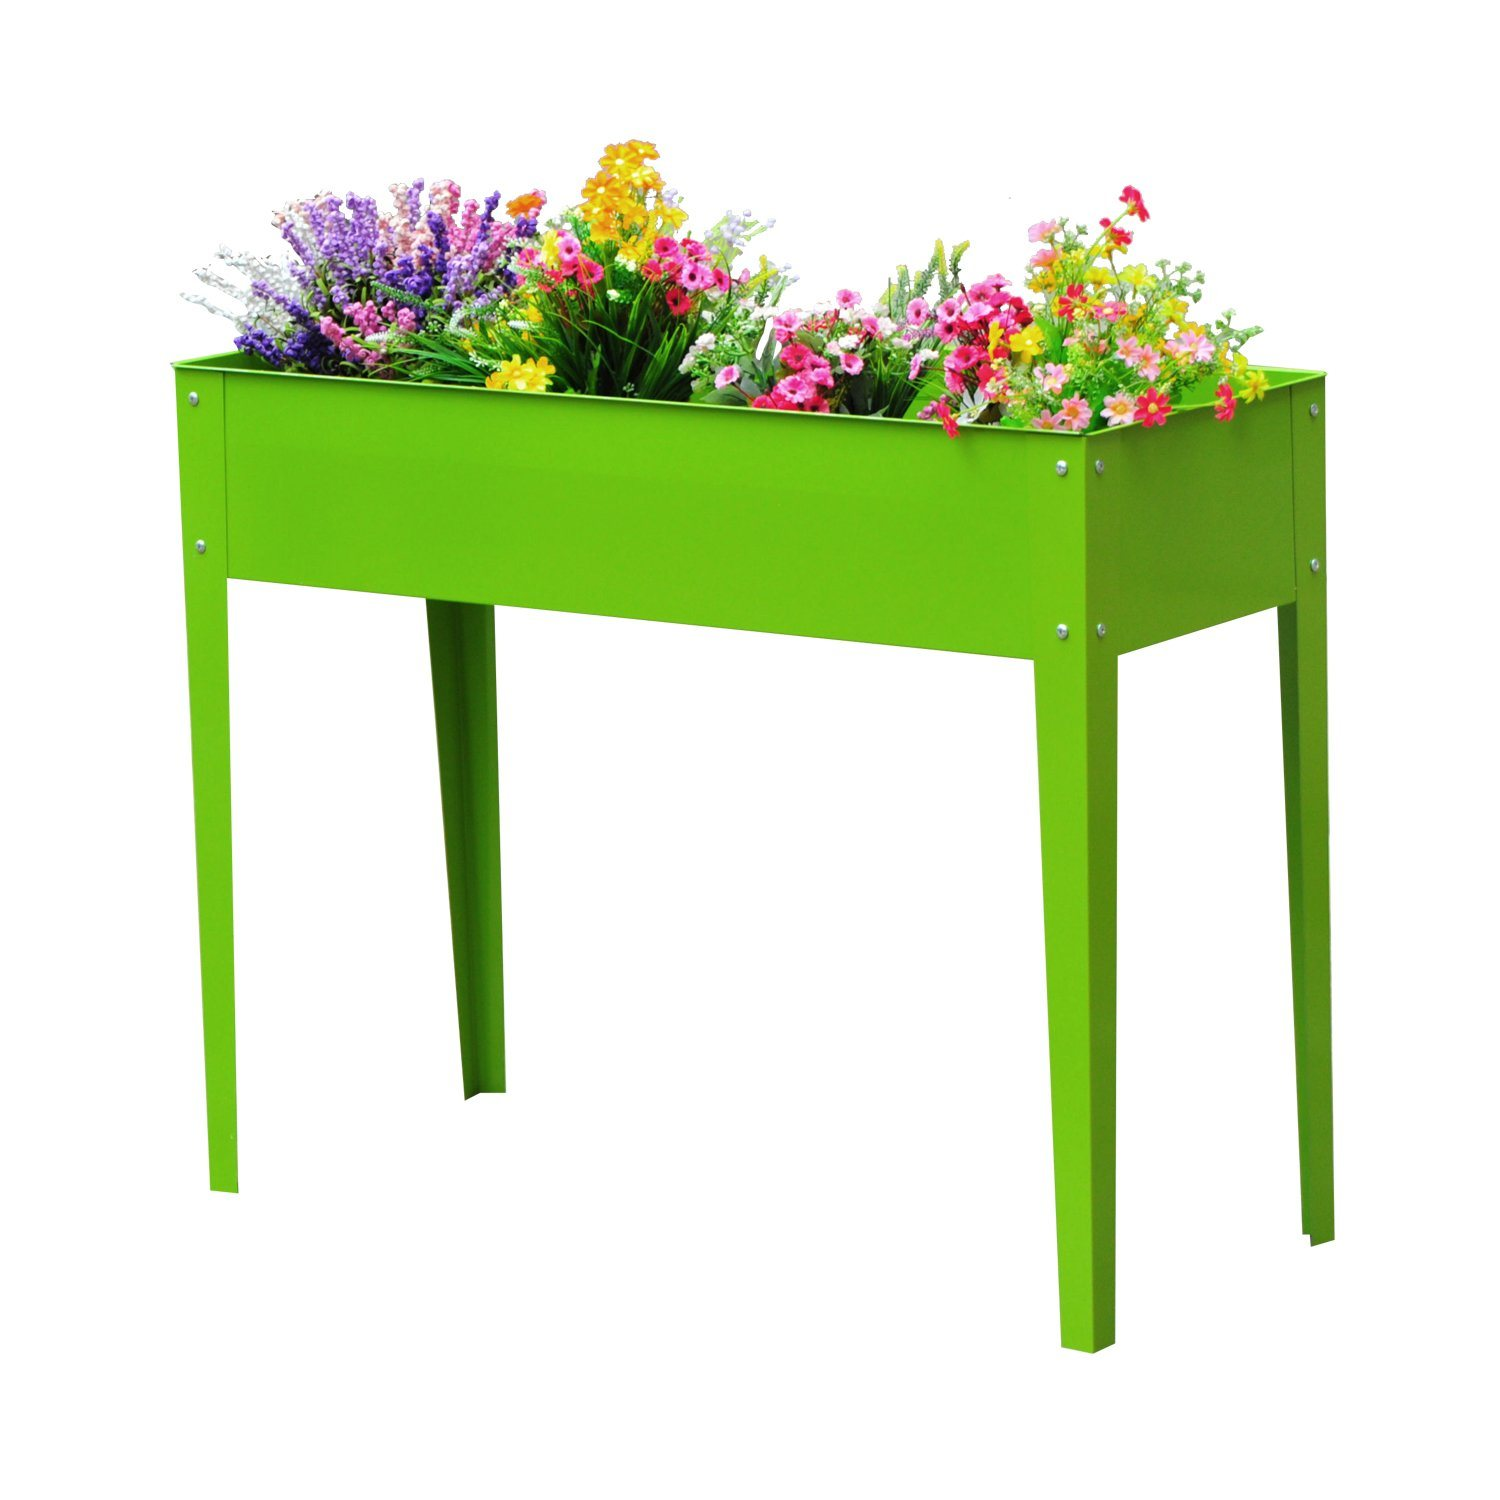 China Metal Raised Garden Bed Planter Box For Flower Vegetable Grow In Garden And Outdoor China Aluminum Planter And Garden Planter Price